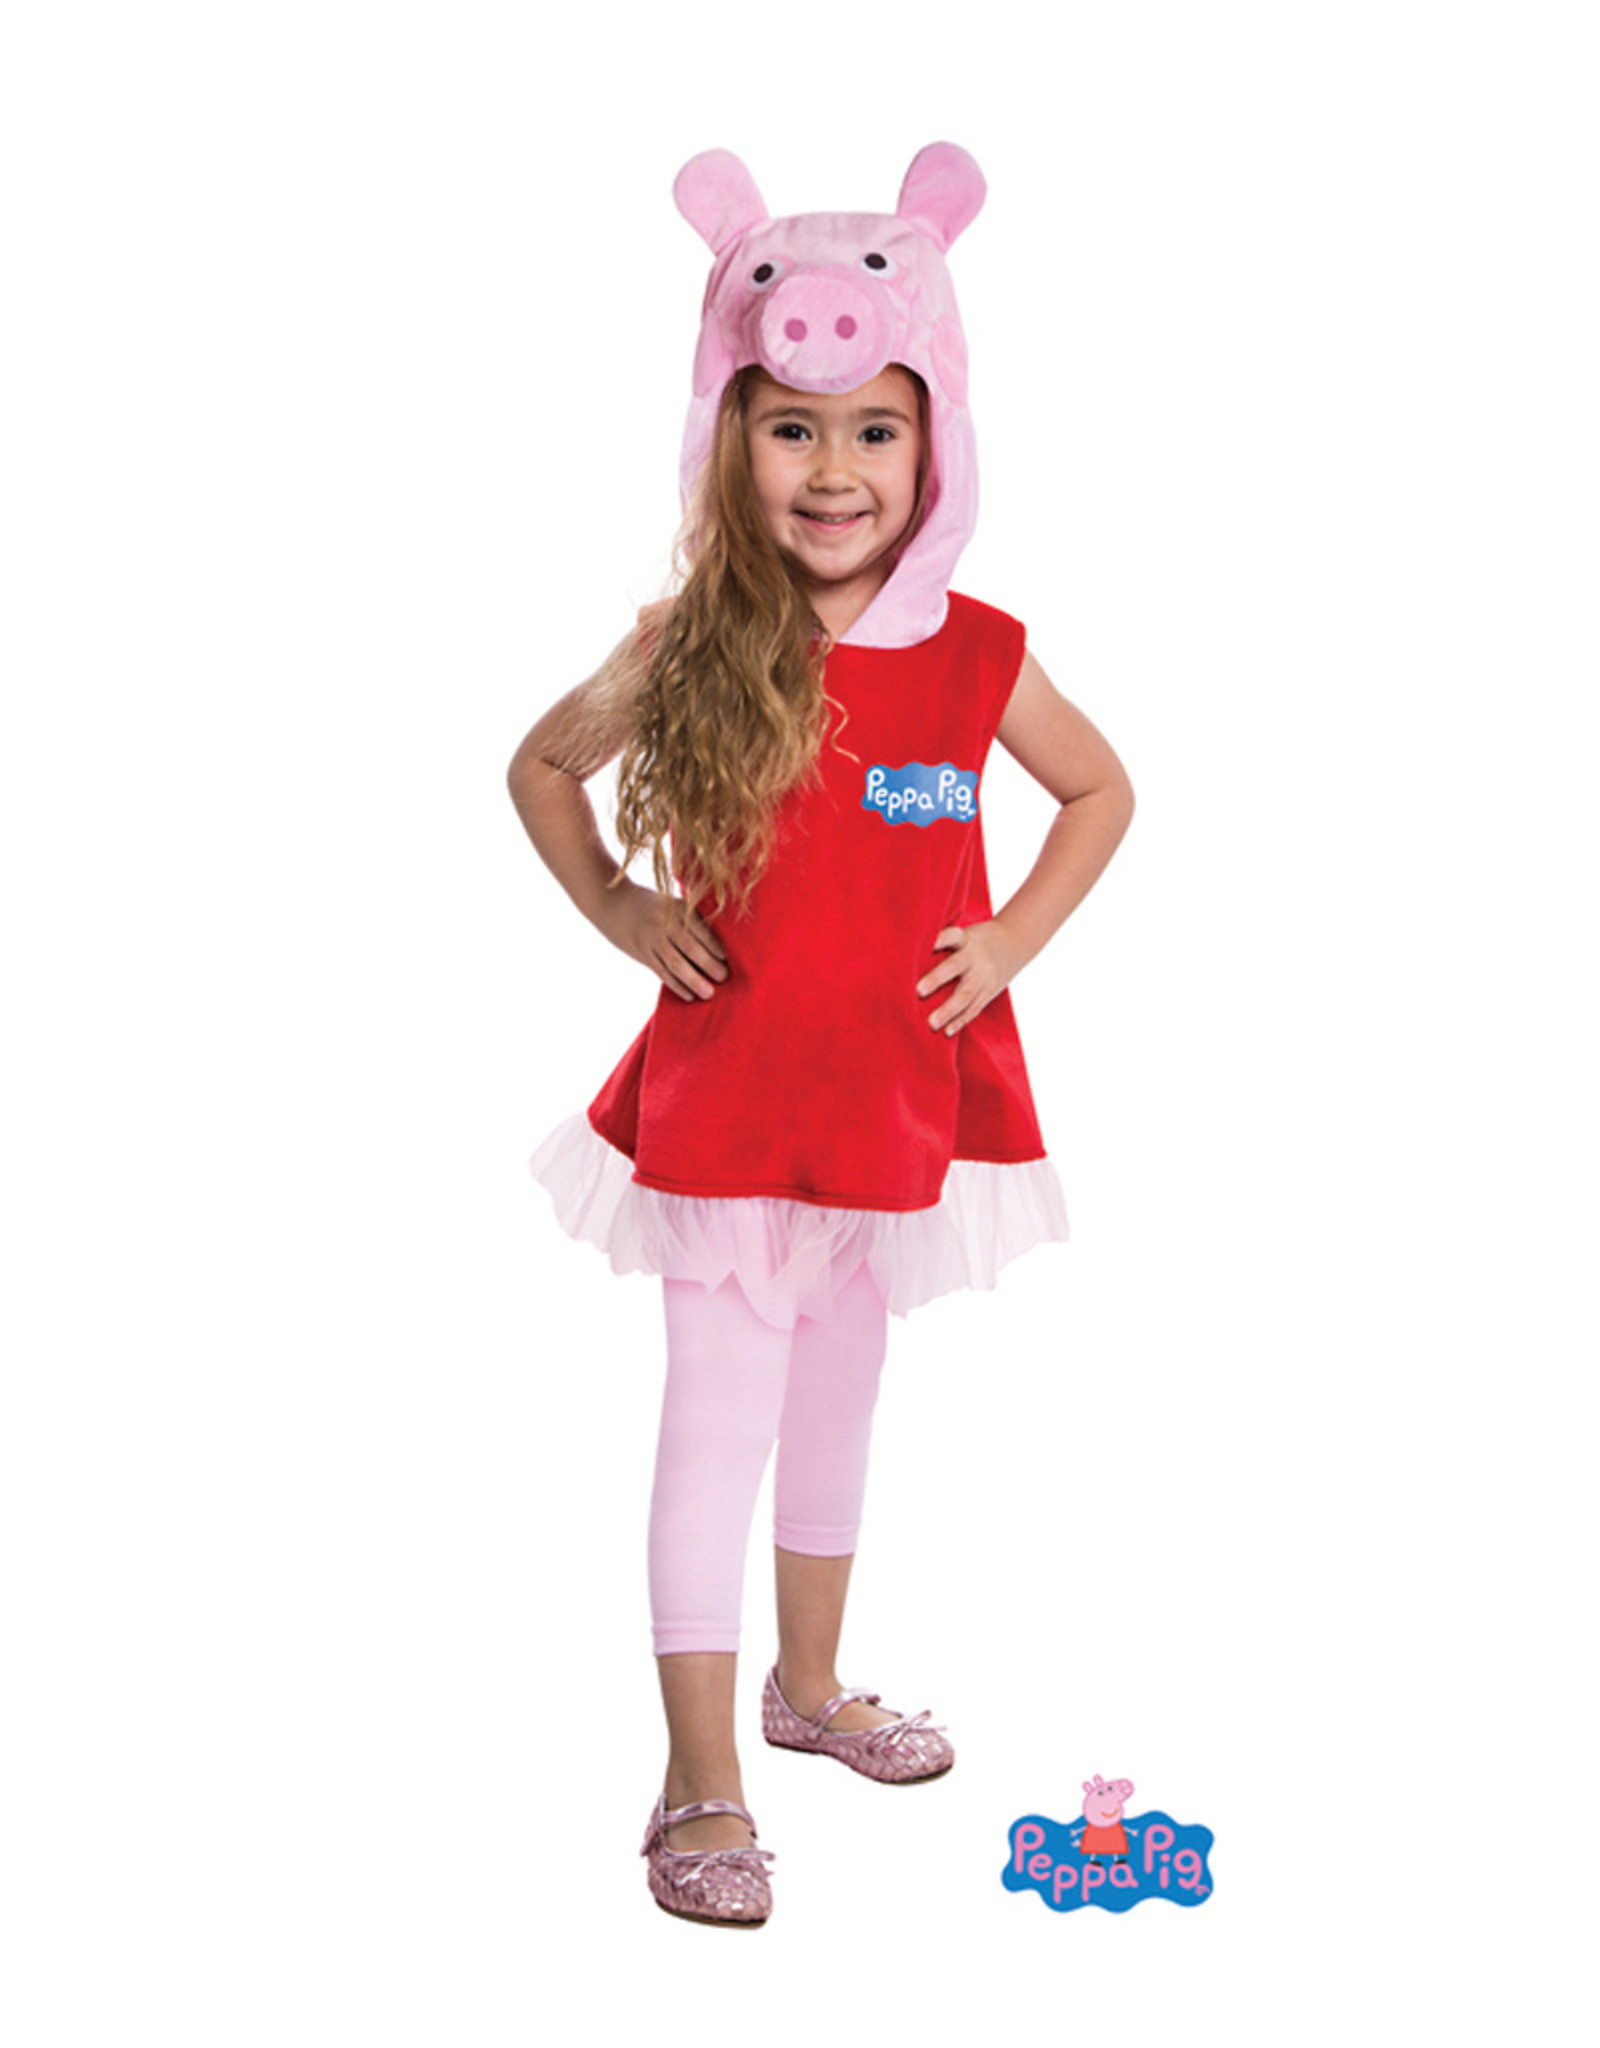 PALAMON Peppa Pig Delux Costume - Toddler